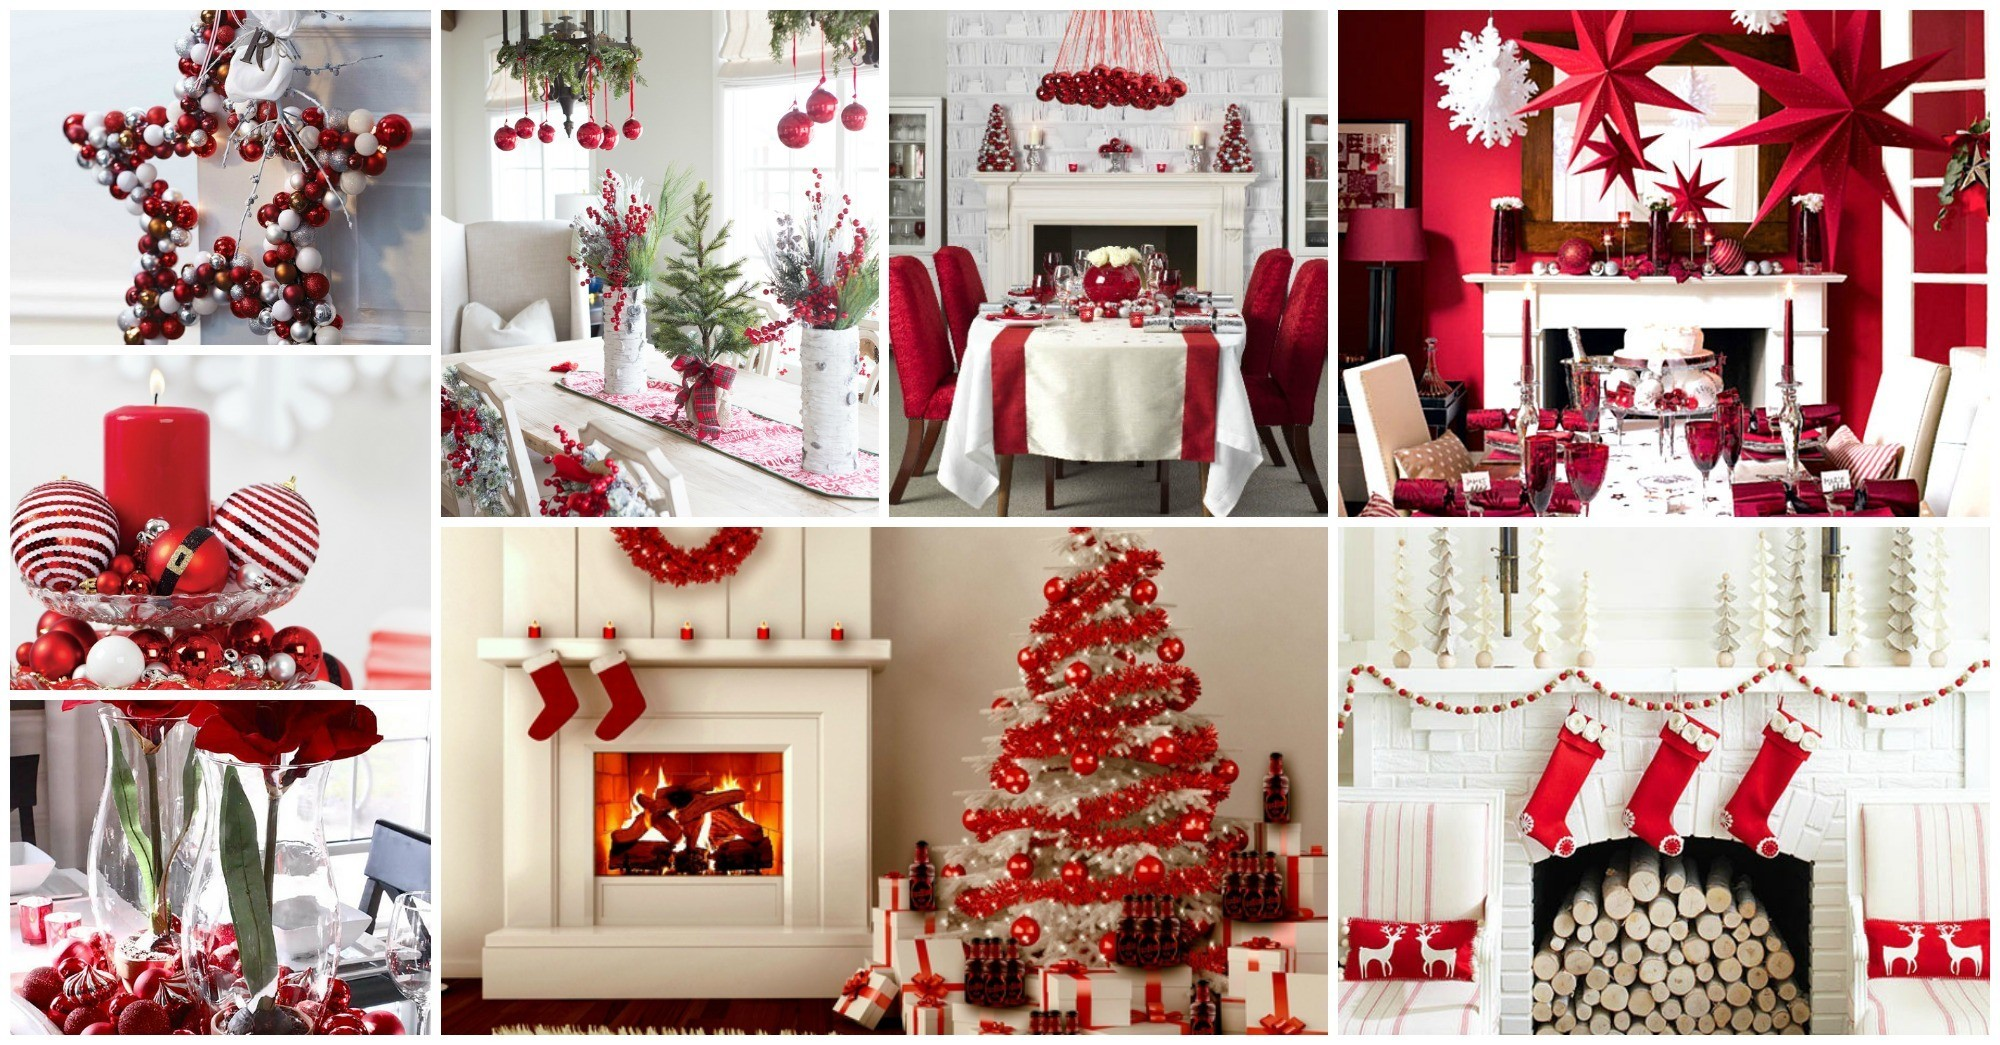 White and Red Christmas Decor Ideas That Will Amaze You